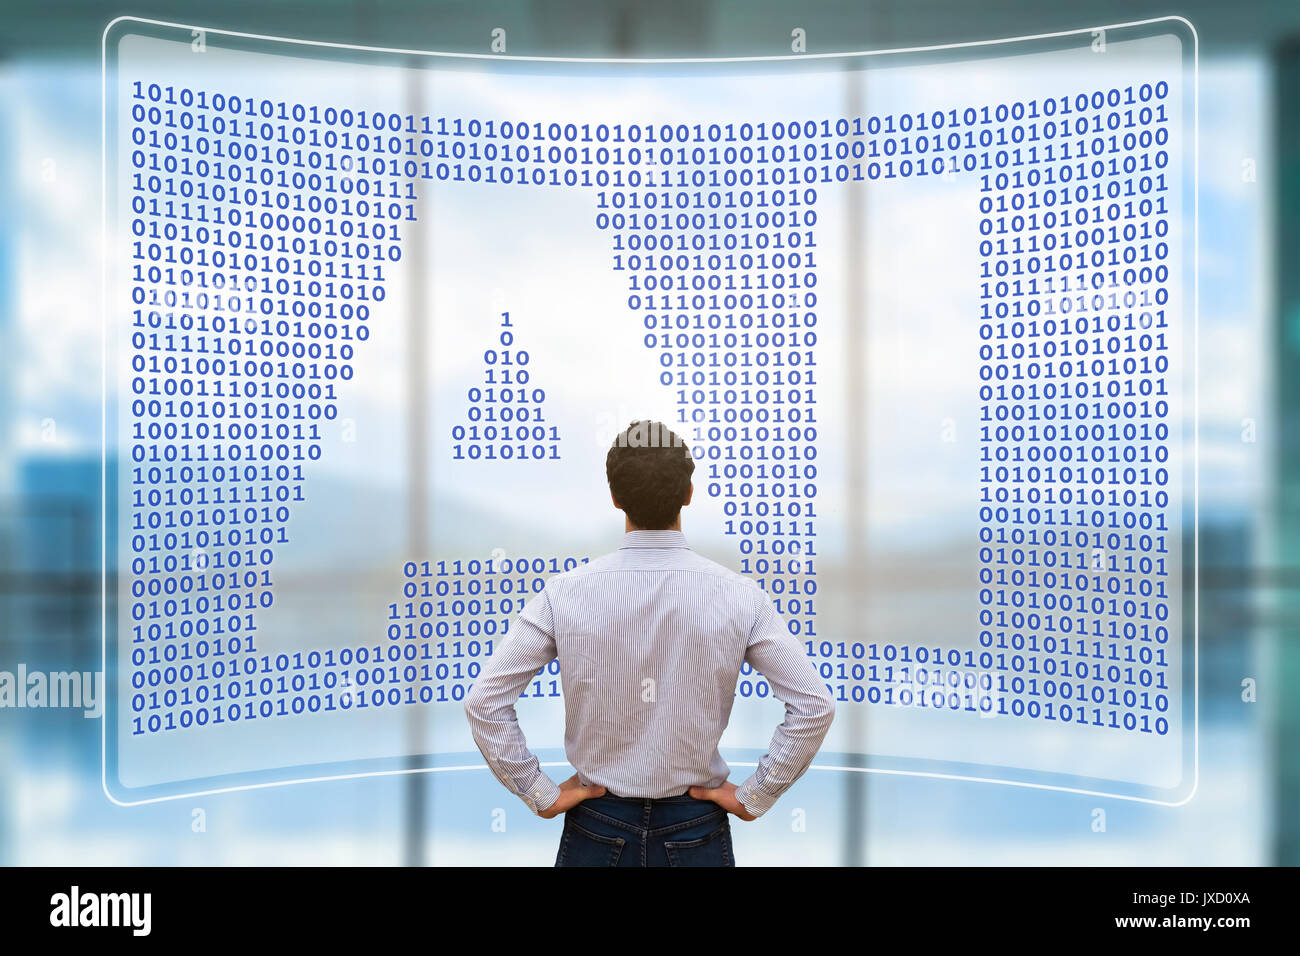 Artificial intelligence concept with text AI in binary code matrix on virtual screen and person working with cyber technology and automation - Stock Image